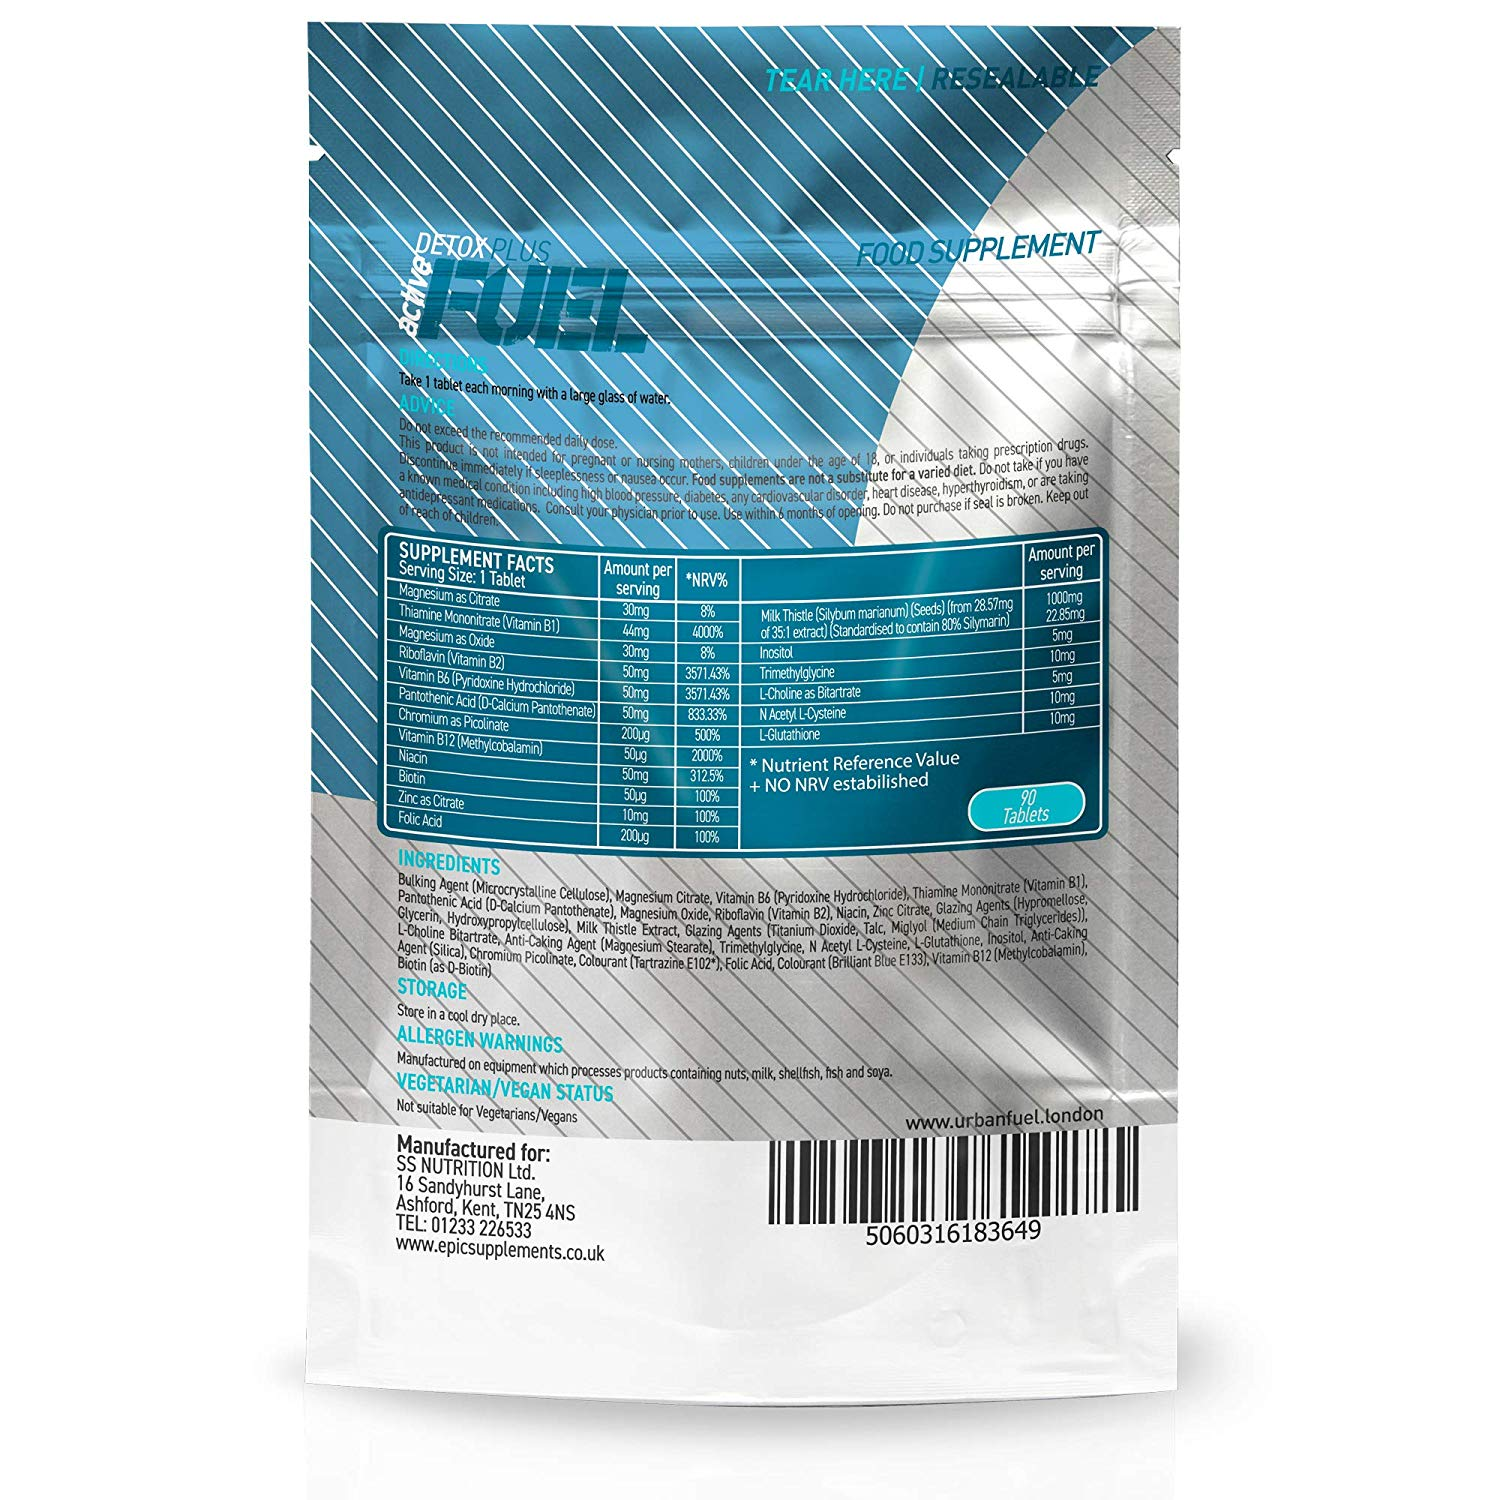 Active Detox Plus by Urban Fuel